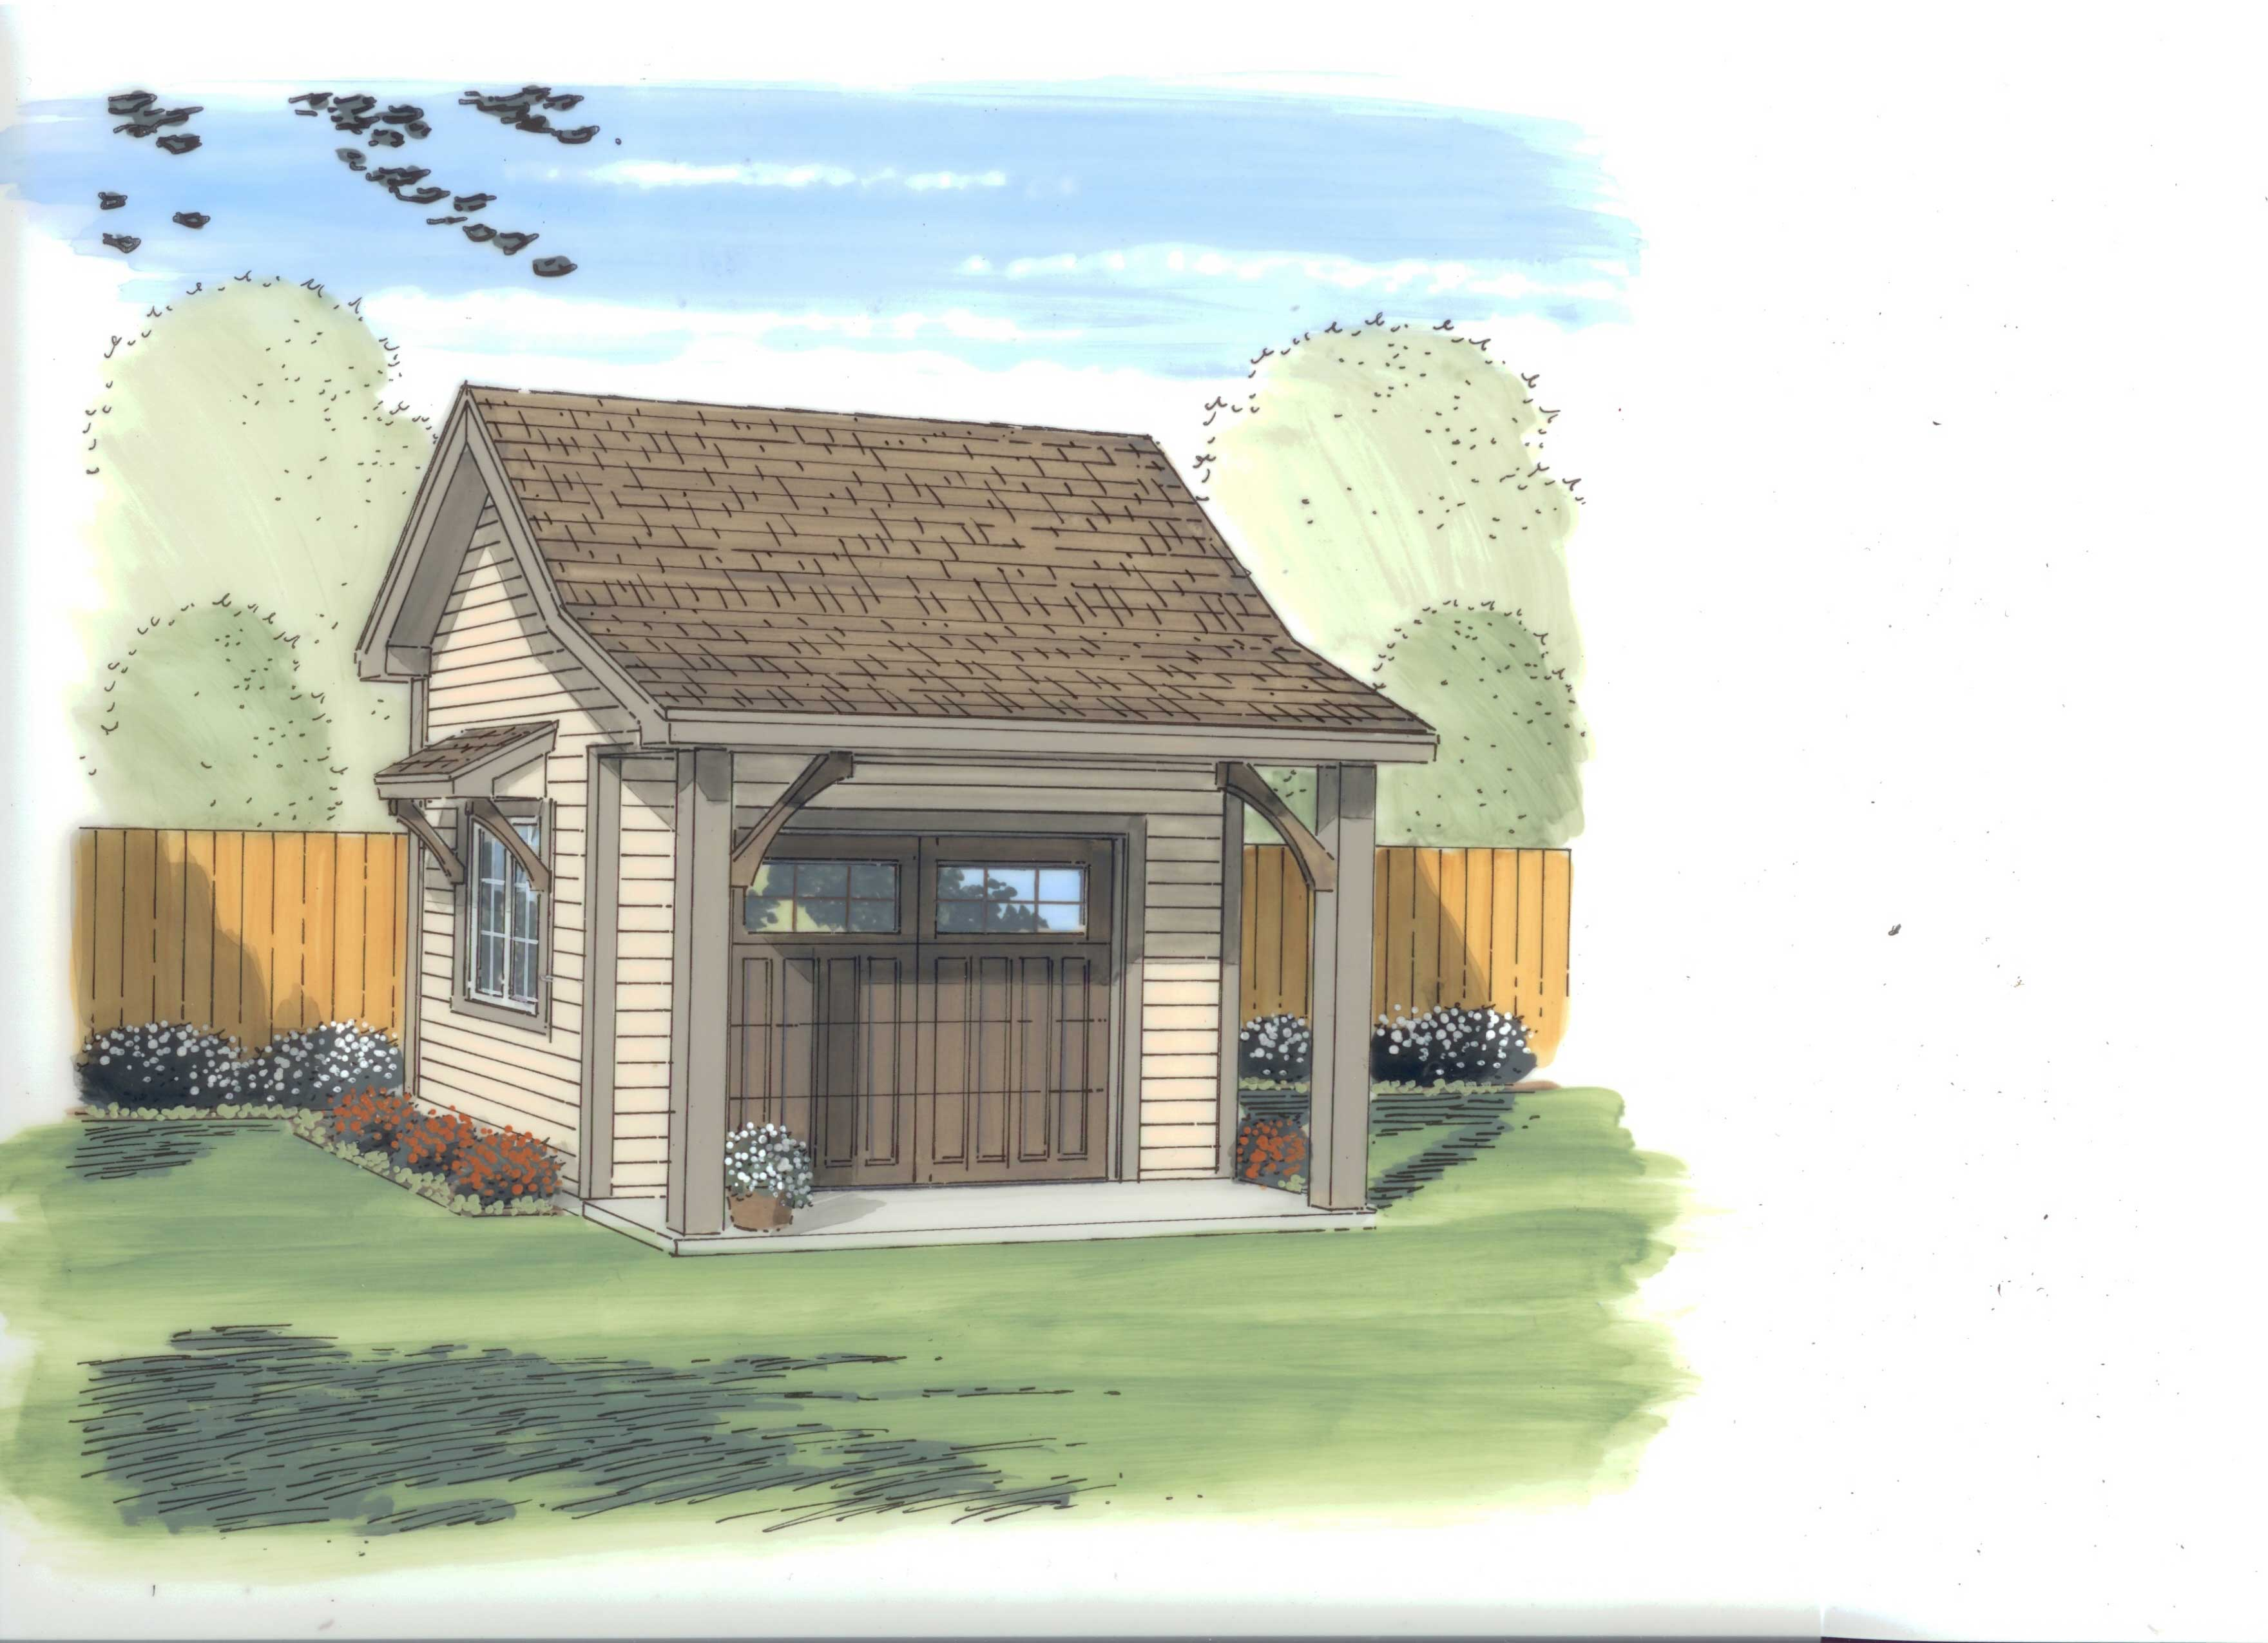 Specialty Home Plan 0 Bedrms 0 Baths 144 Sq Ft 100